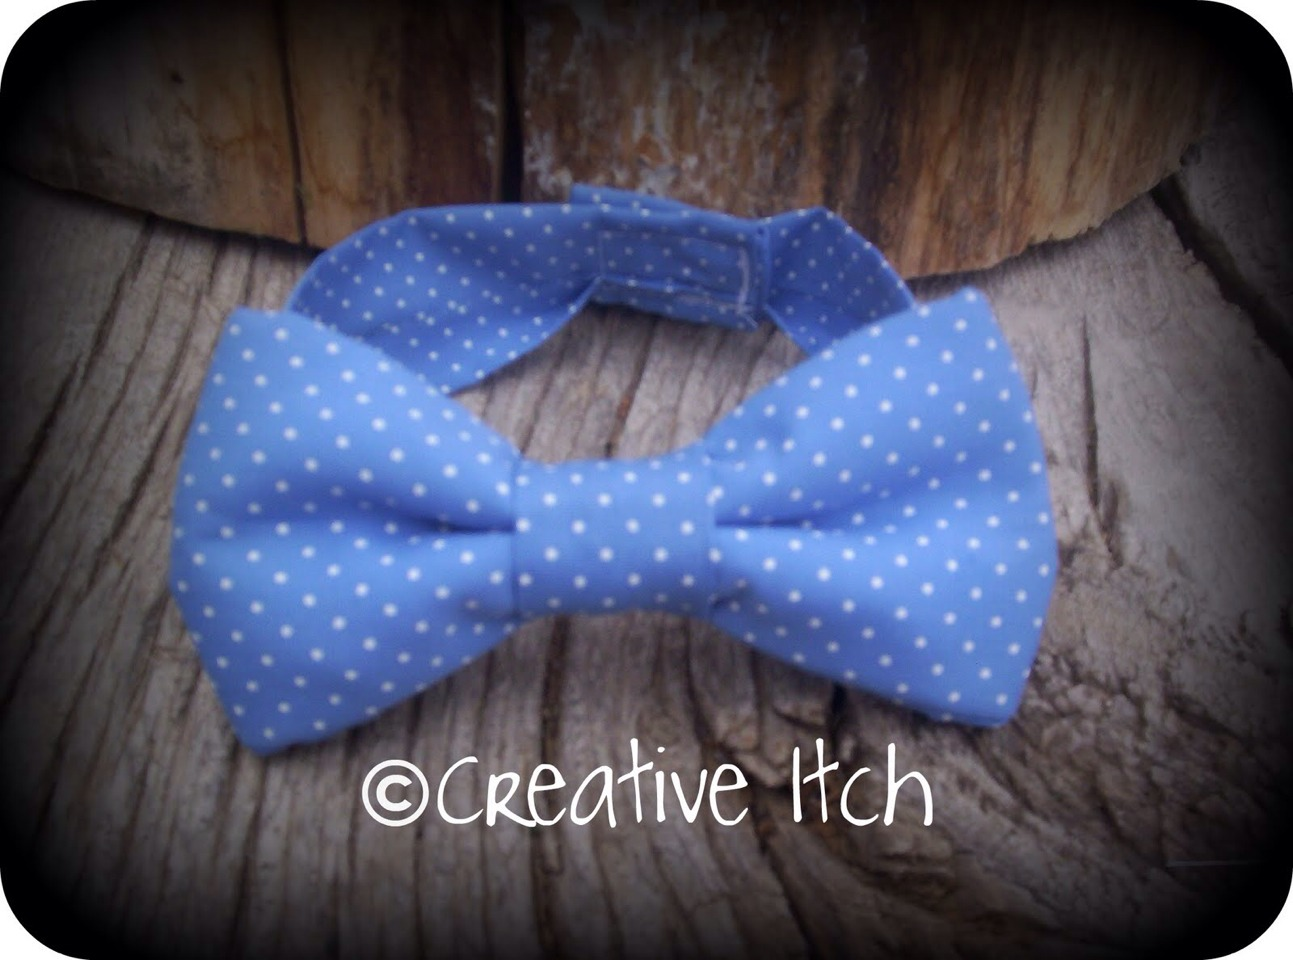 3. If you're trying to look nerdy, you can't forget the bow tie!